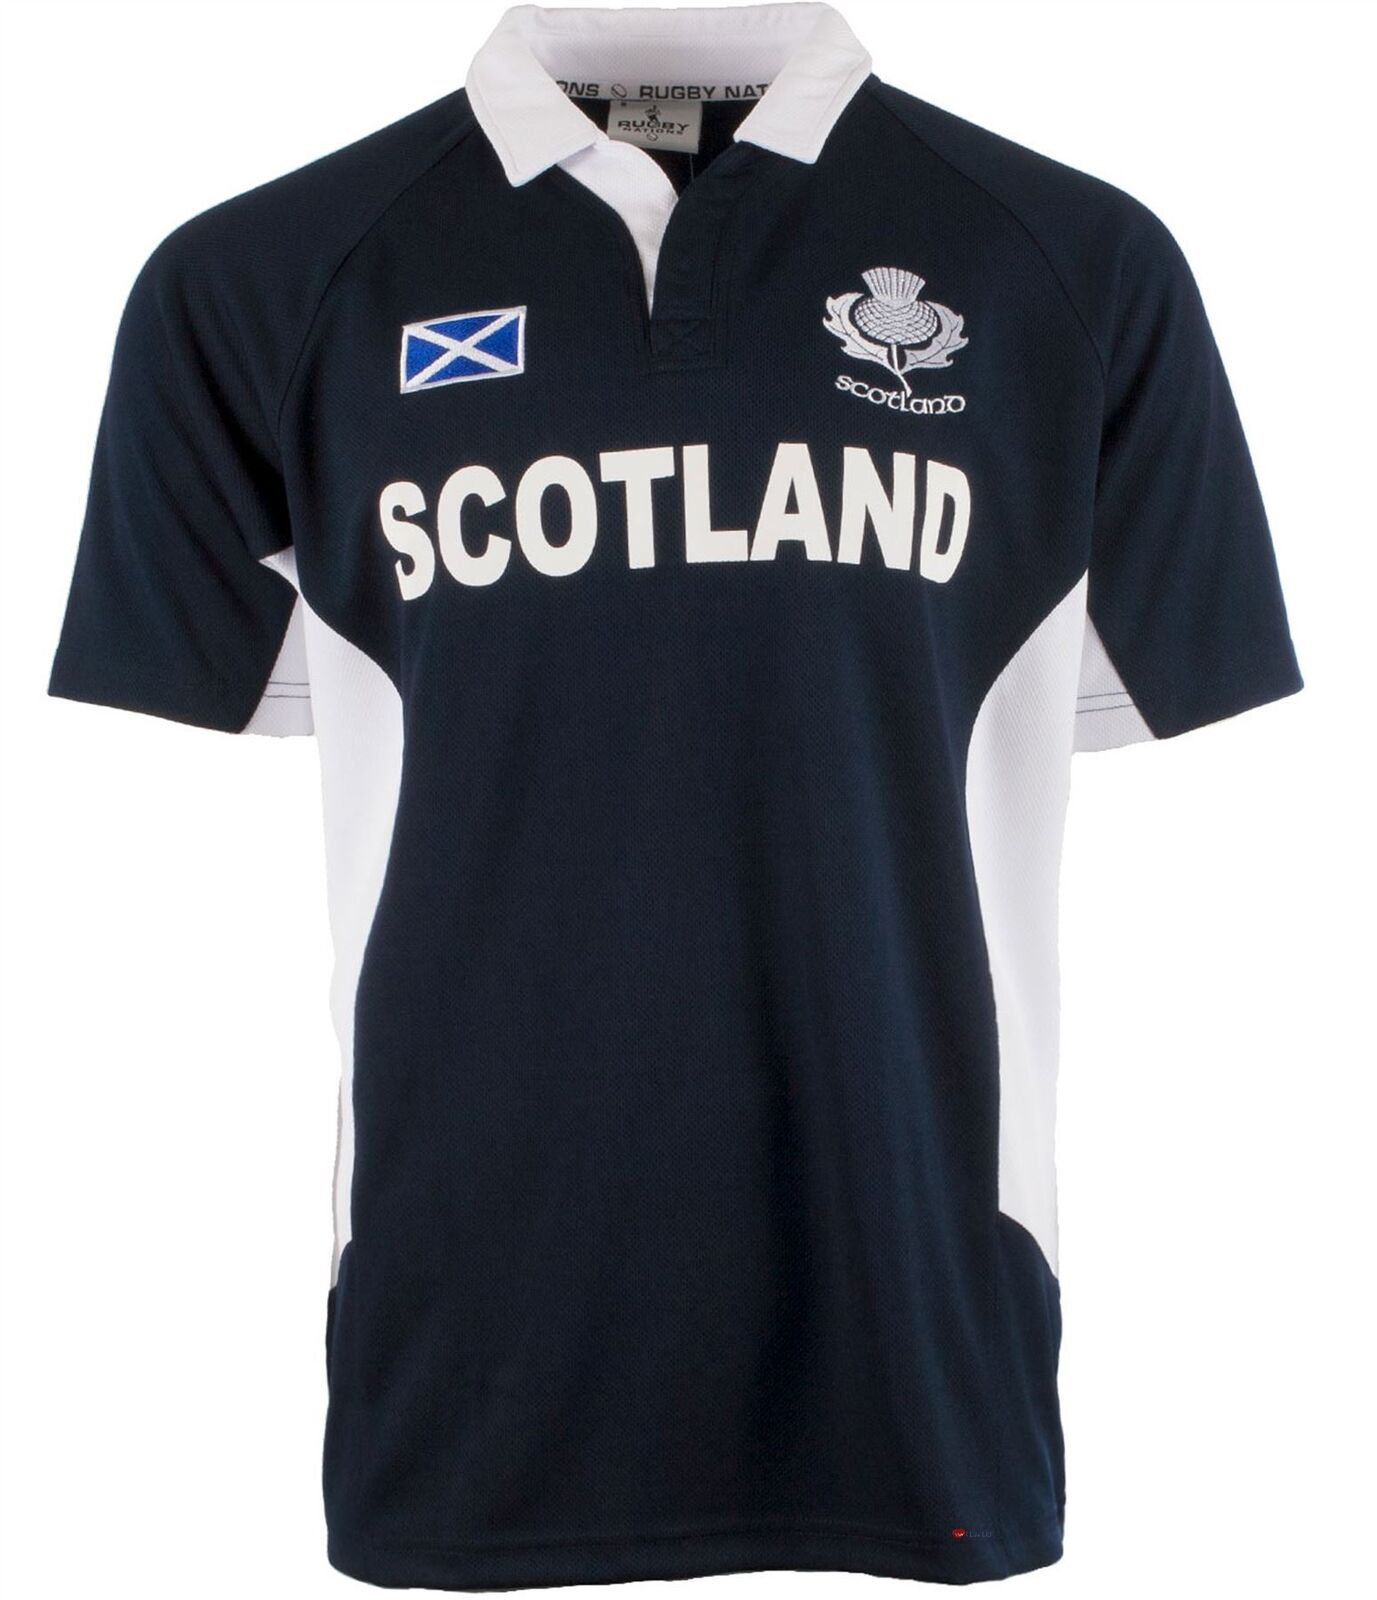 Gents Rugby Nations Rugby Shirt With Thistle Design In Navy Size X-Small